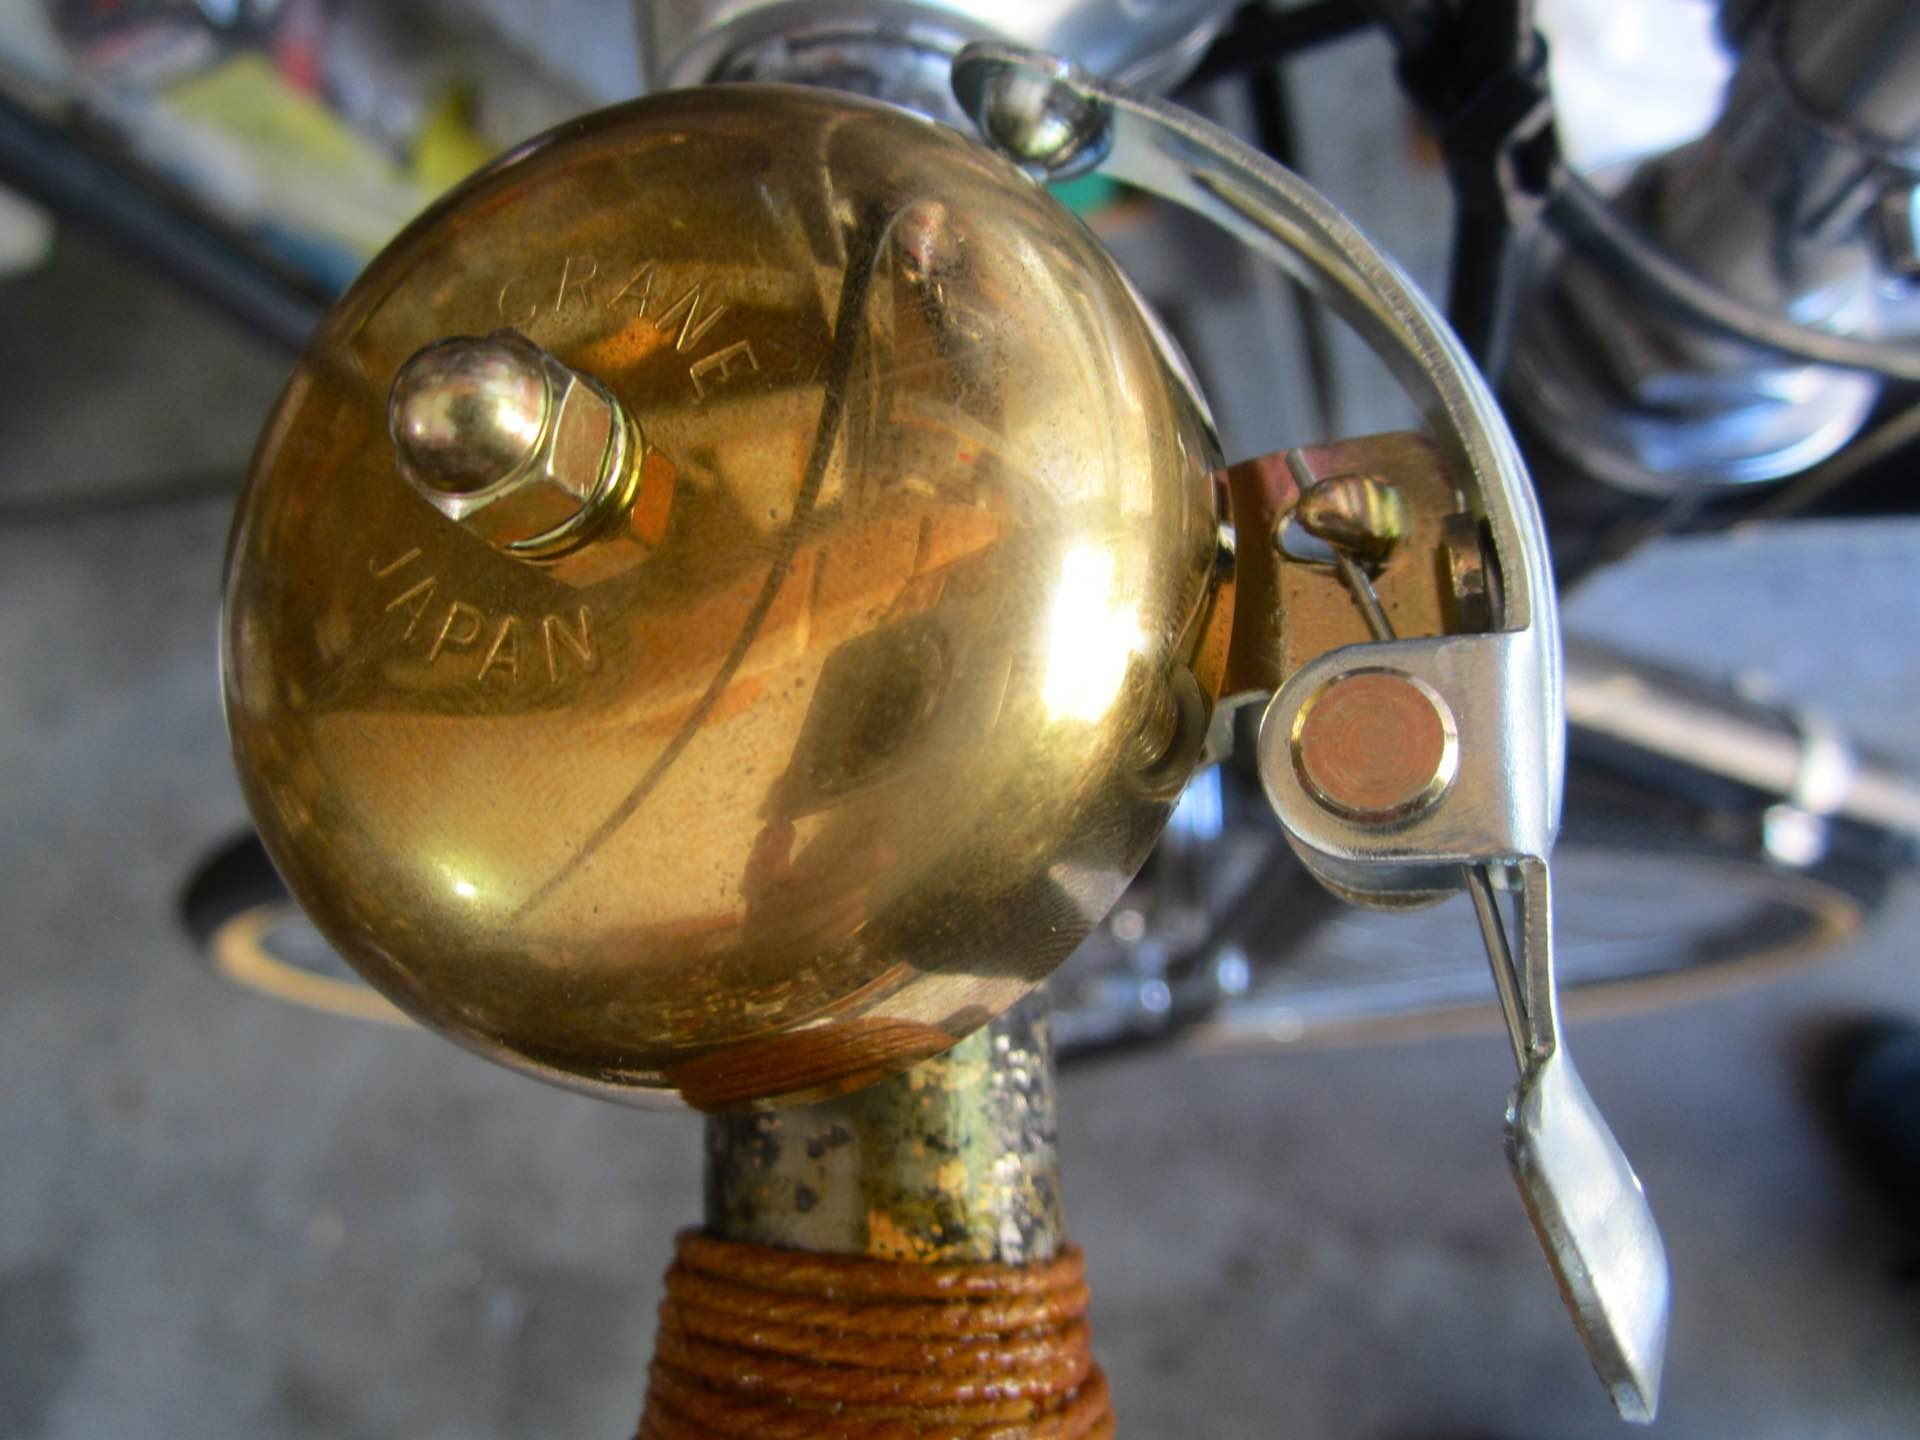 Crane's Suzu lever-strike bicycle bell. ($12)